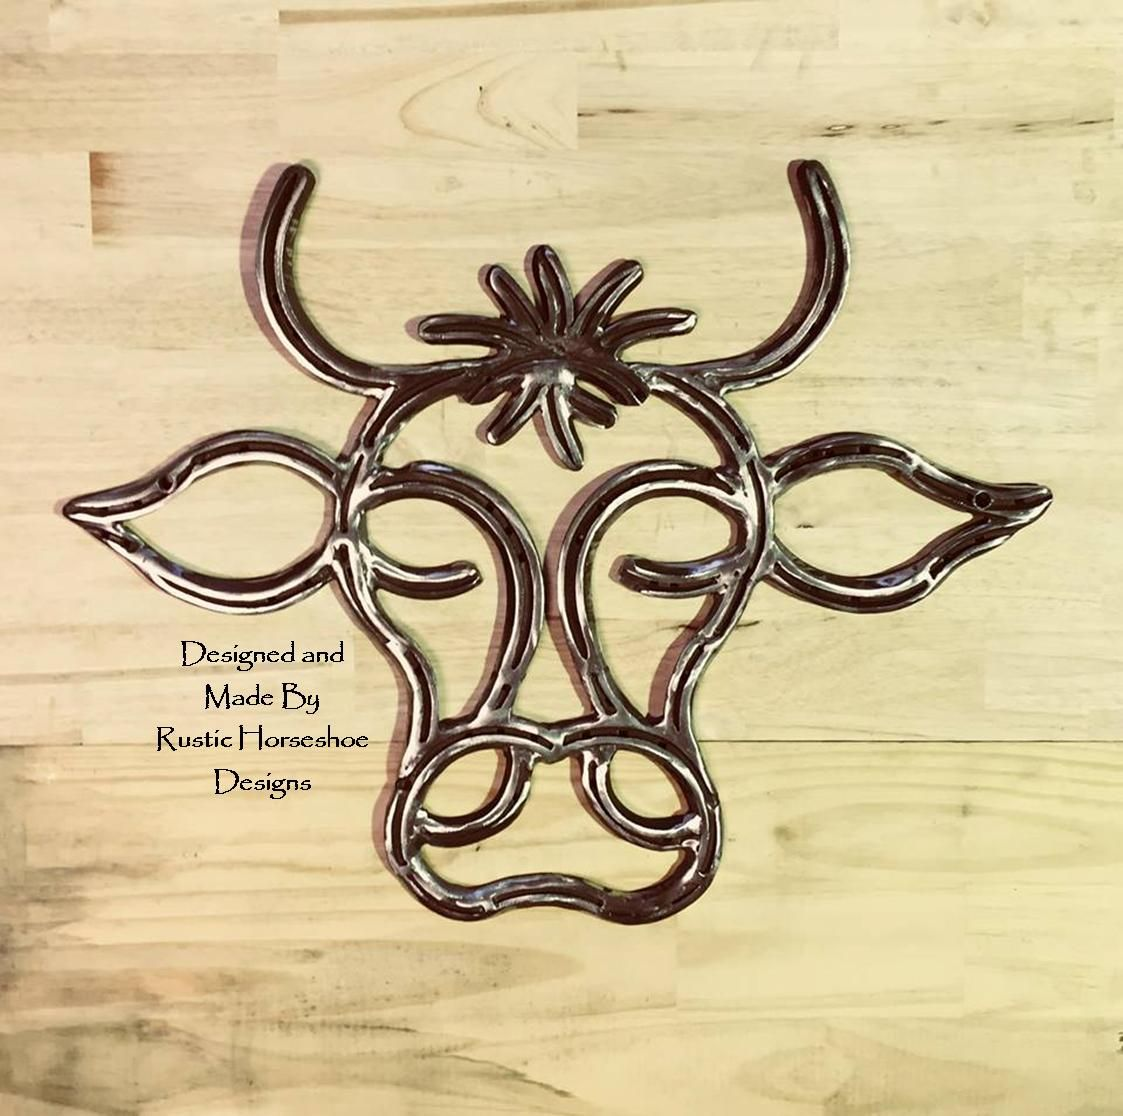 Miss Moo Designed And Made With Steel Horseshoes By Rustic Horseshoe Designs In Western Australia Welding Art Projects Welding Art Metal Tree Wall Art